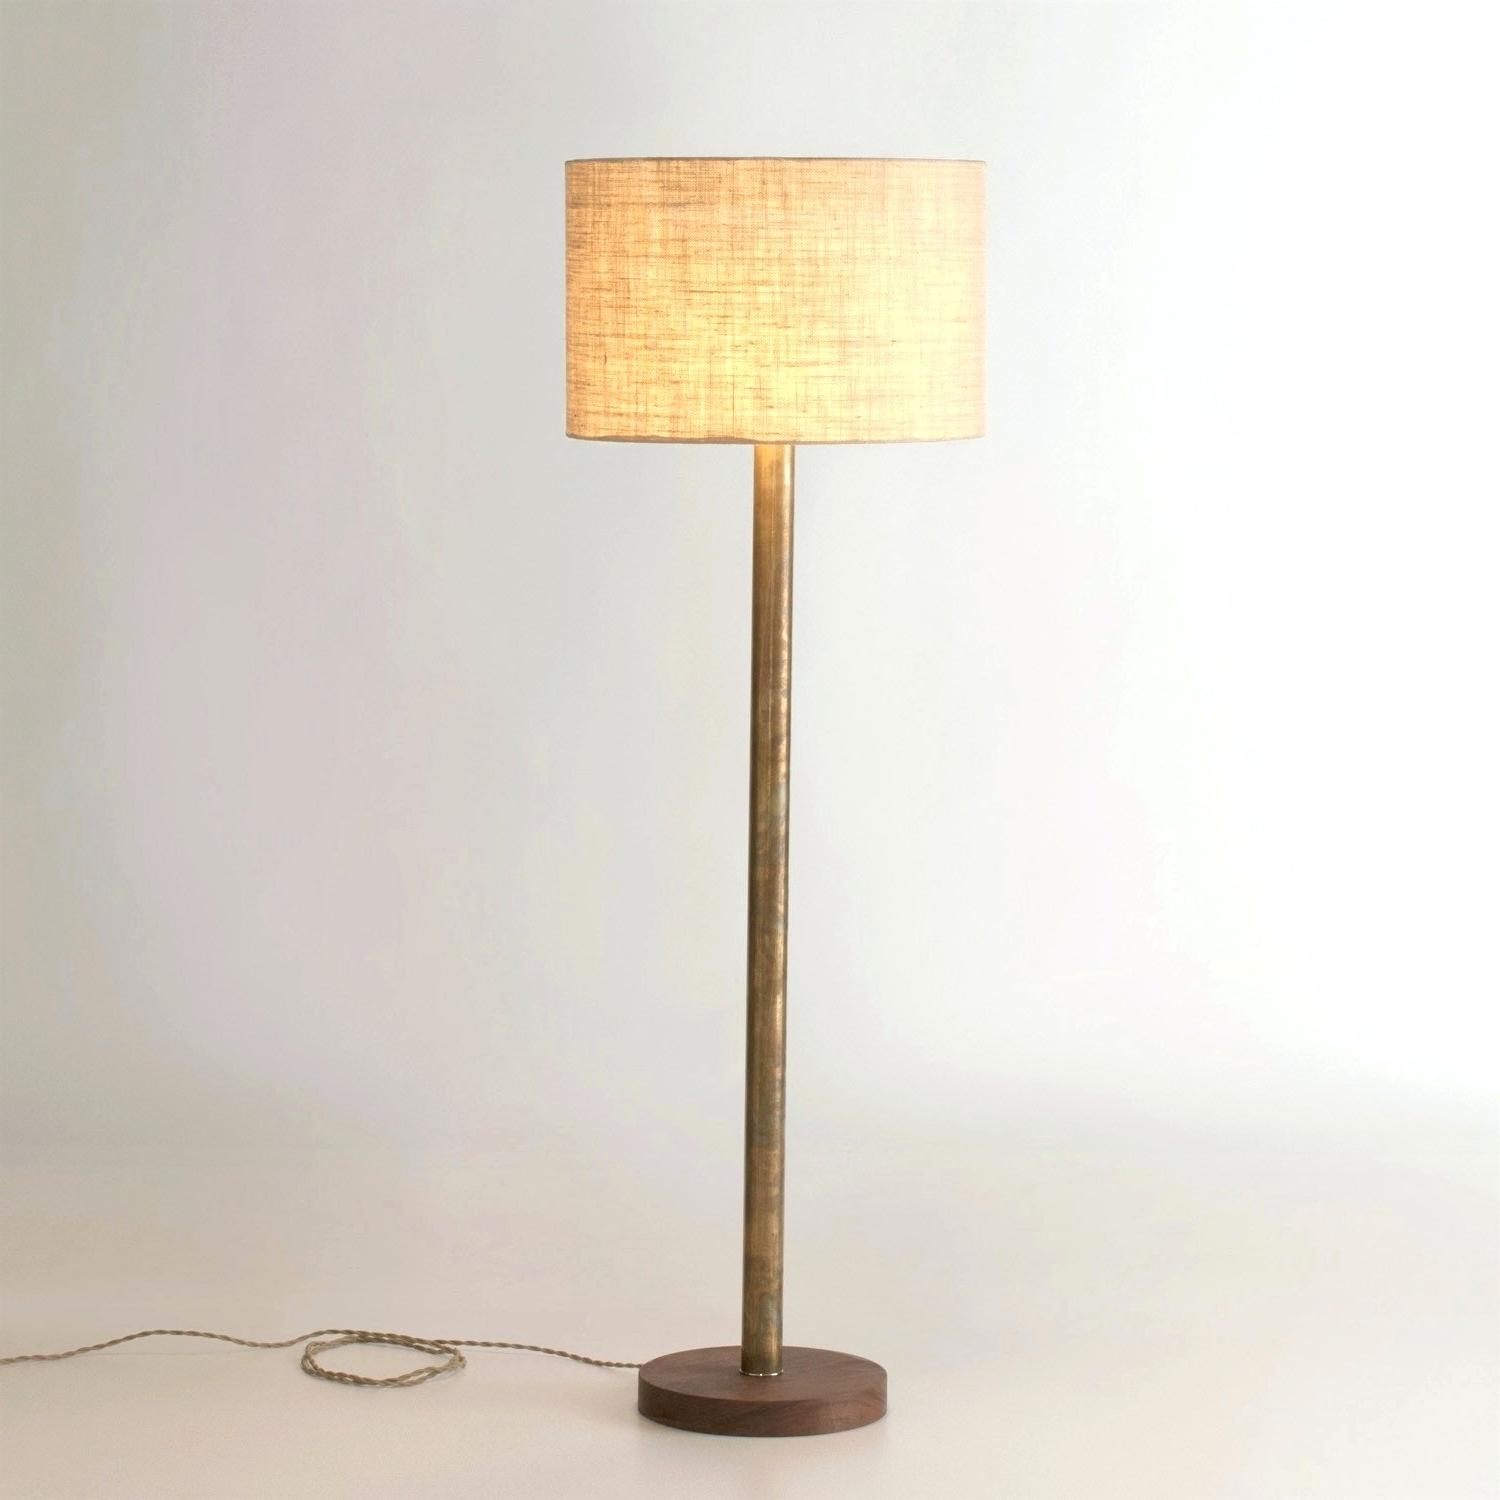 Favorite Light : Chandelier Style Floor Lamp With Lamps And The Best Choice Pertaining To Chandelier Standing Lamps (View 20 of 20)